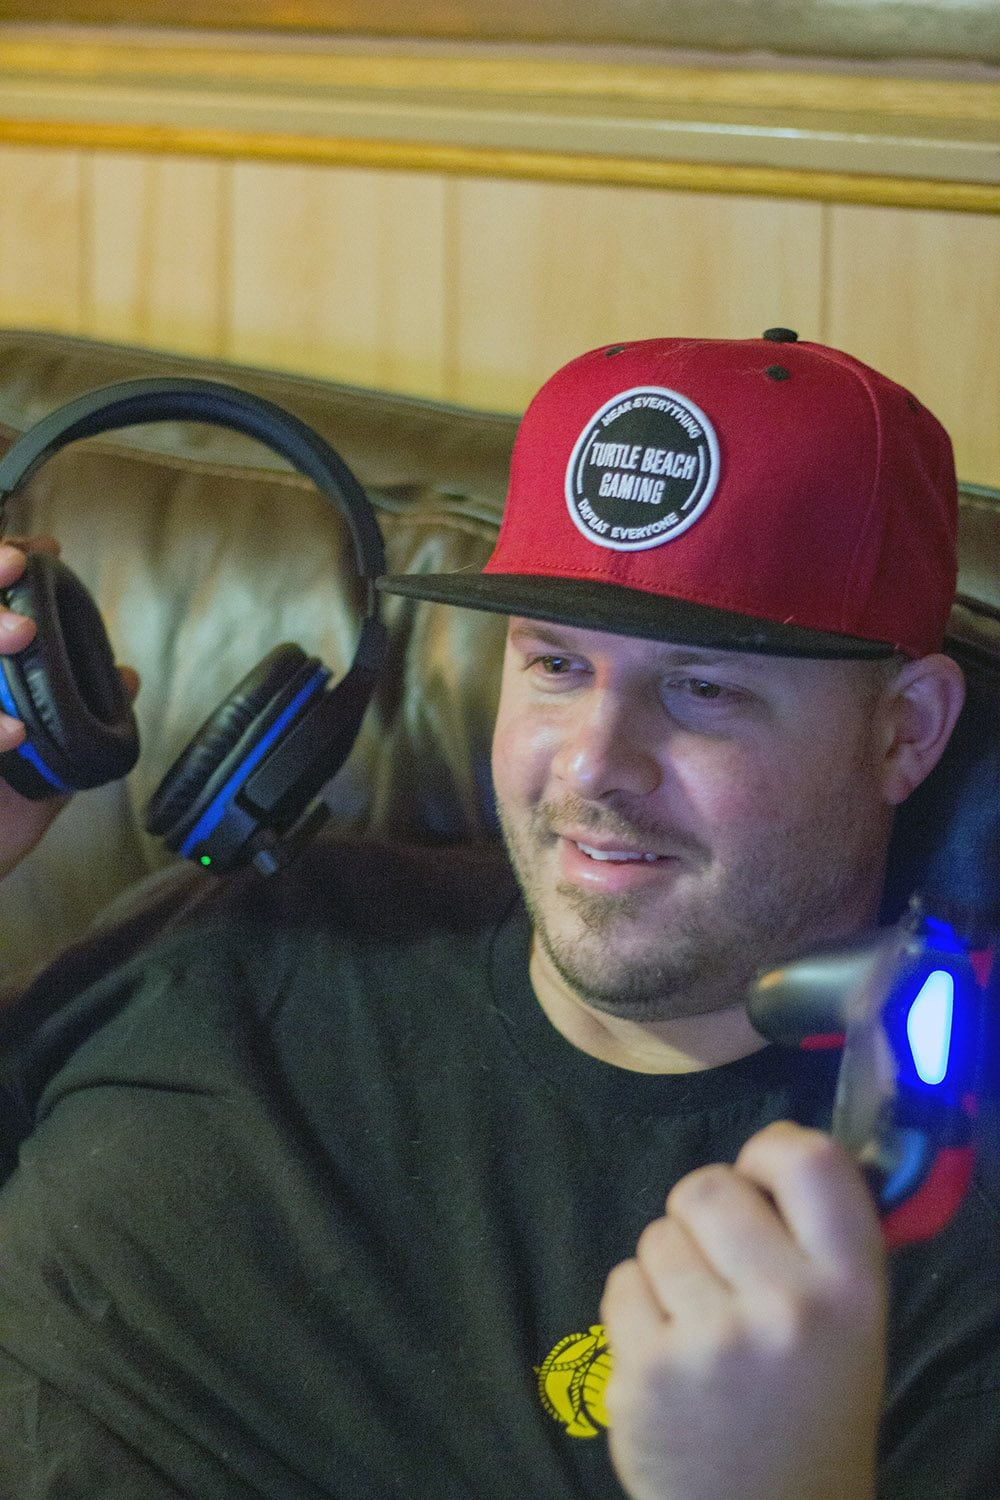 Thoughts about the Turtle Beach PS4 Headset from an OG (Original Gamer)